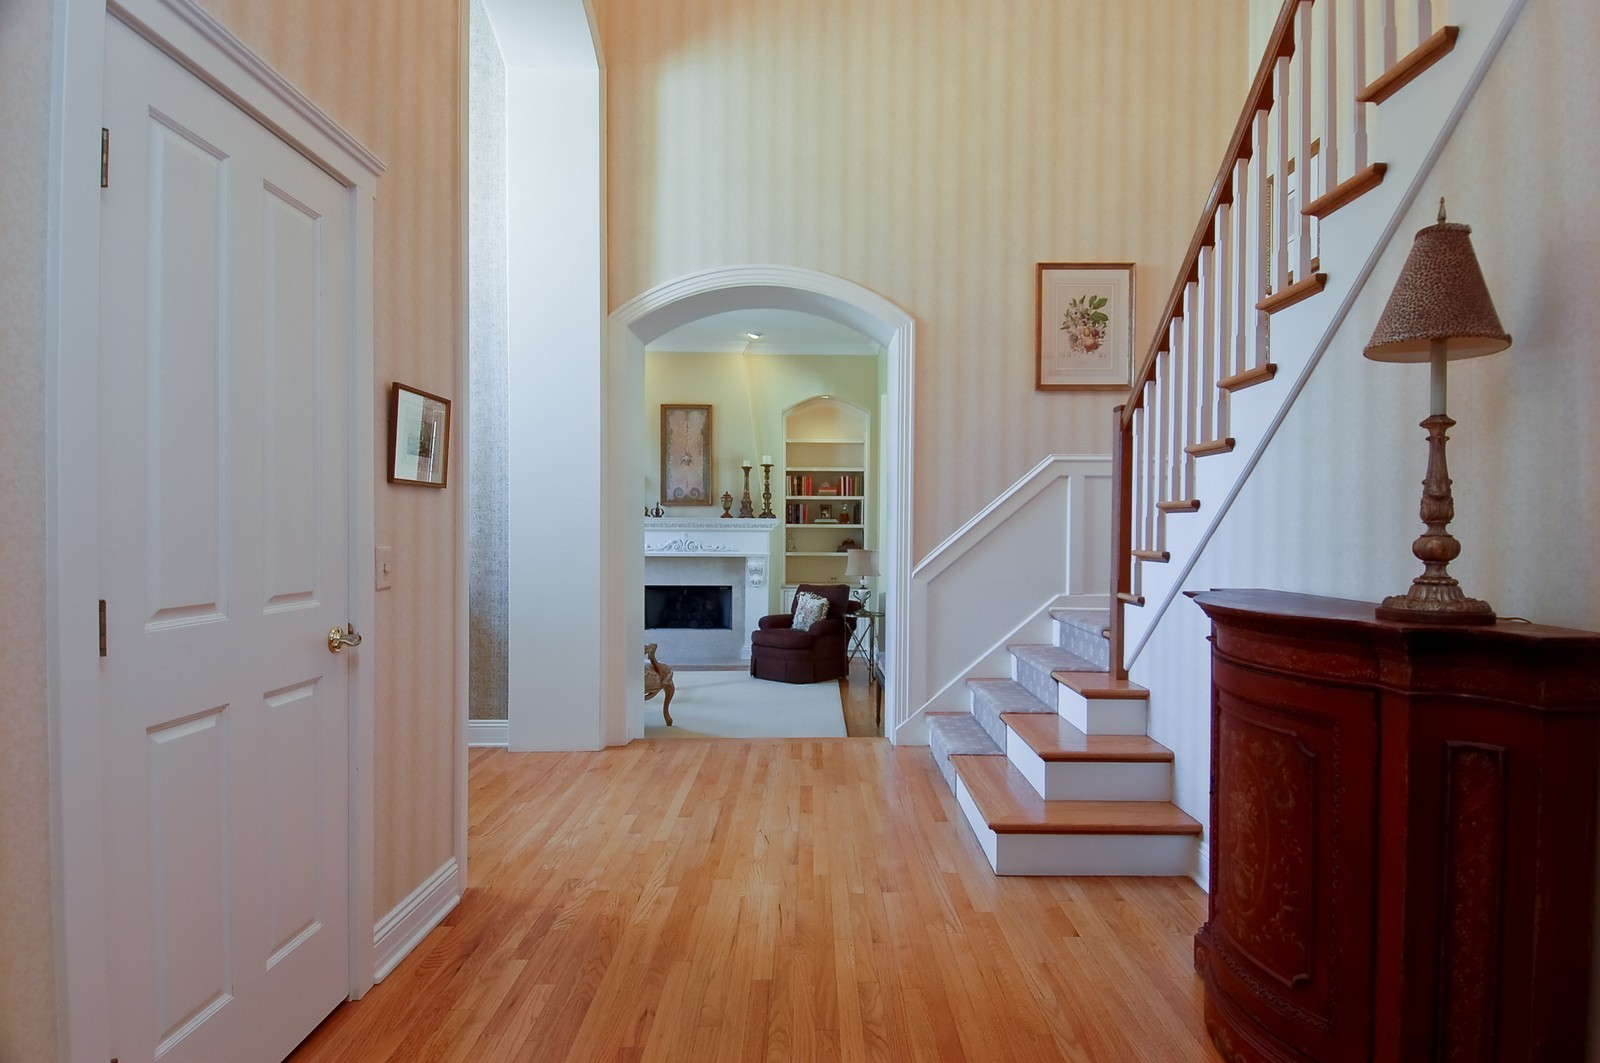 Real Estate Photography - 1492 Lloyd, Wheaton, IL, 60189 - Hallway/Gallery